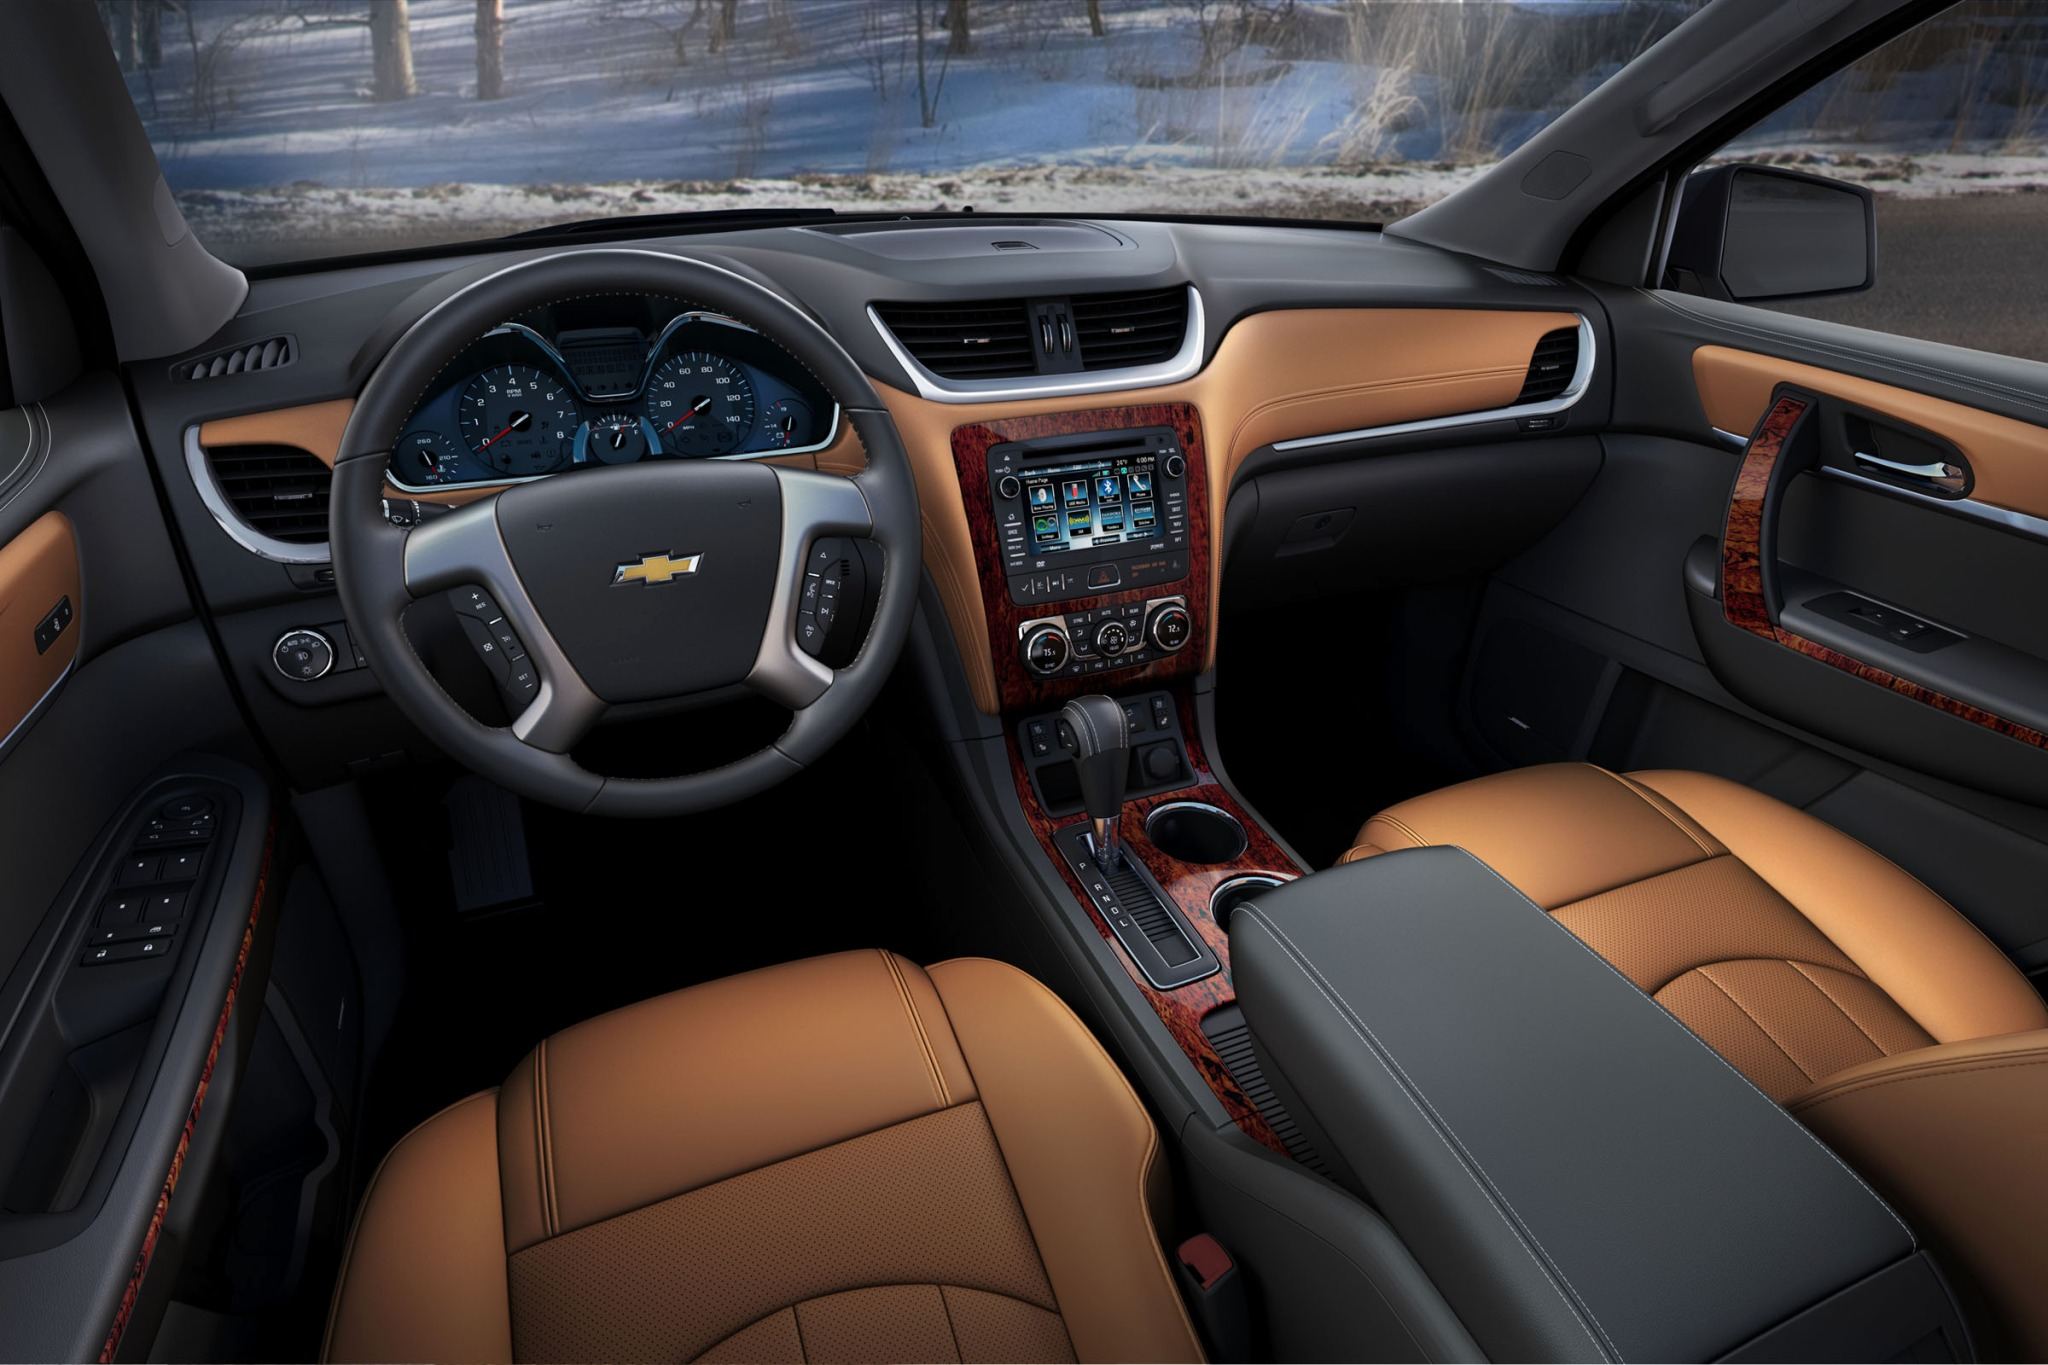 vs civilized traveler a video chevrolet suvs traverse review play consumer reports